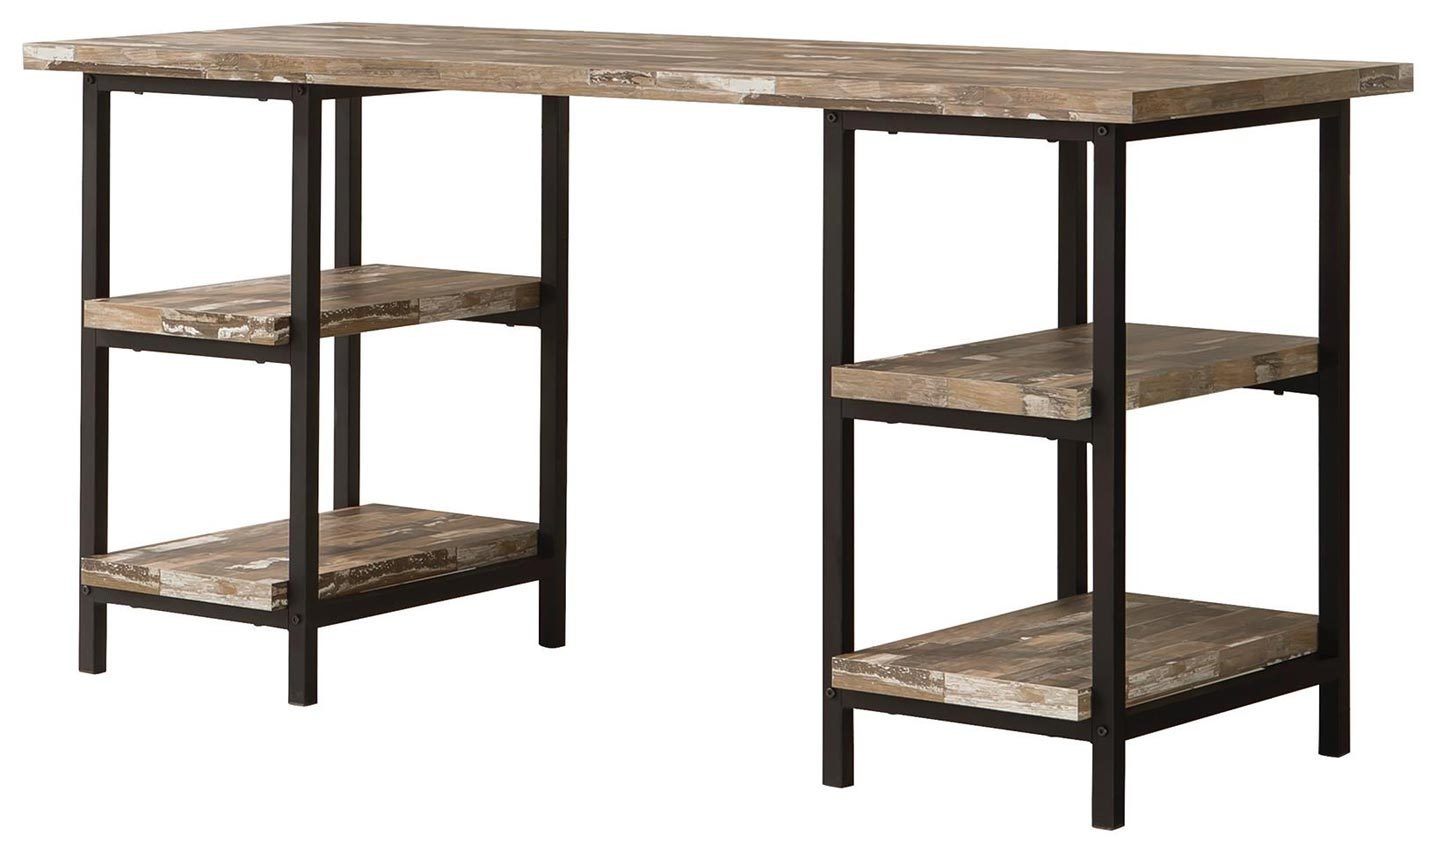 Skelton Modern Rustic Writing Desk With Metal Frame